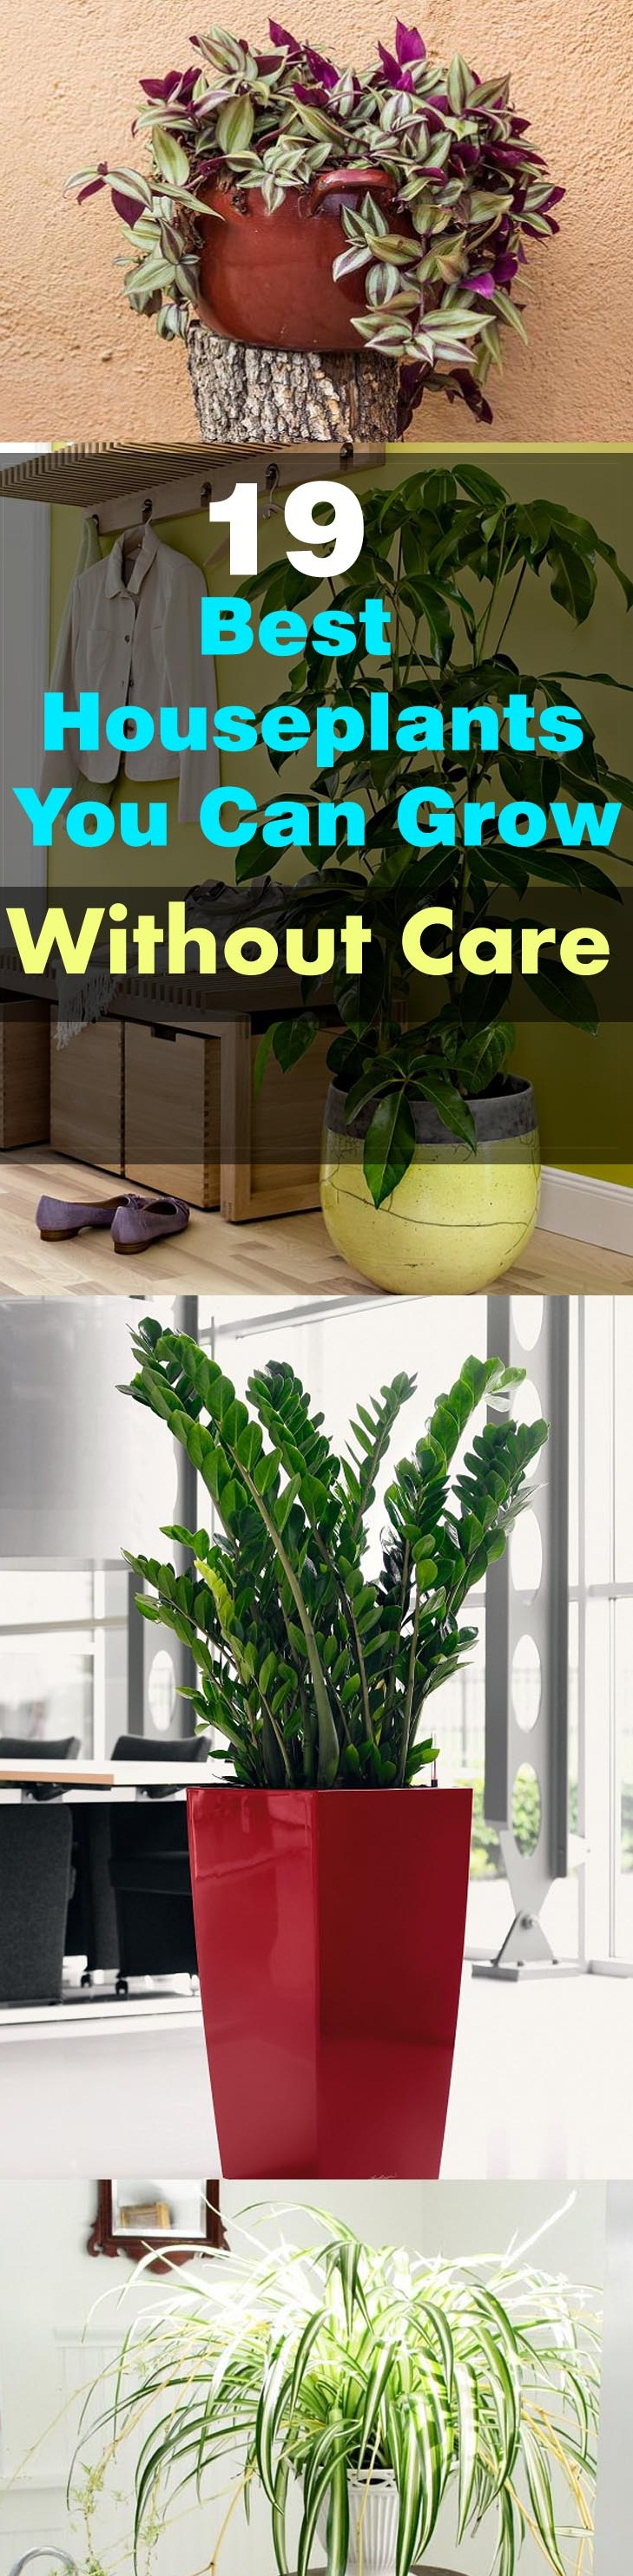 19 best houseplants that grow without care